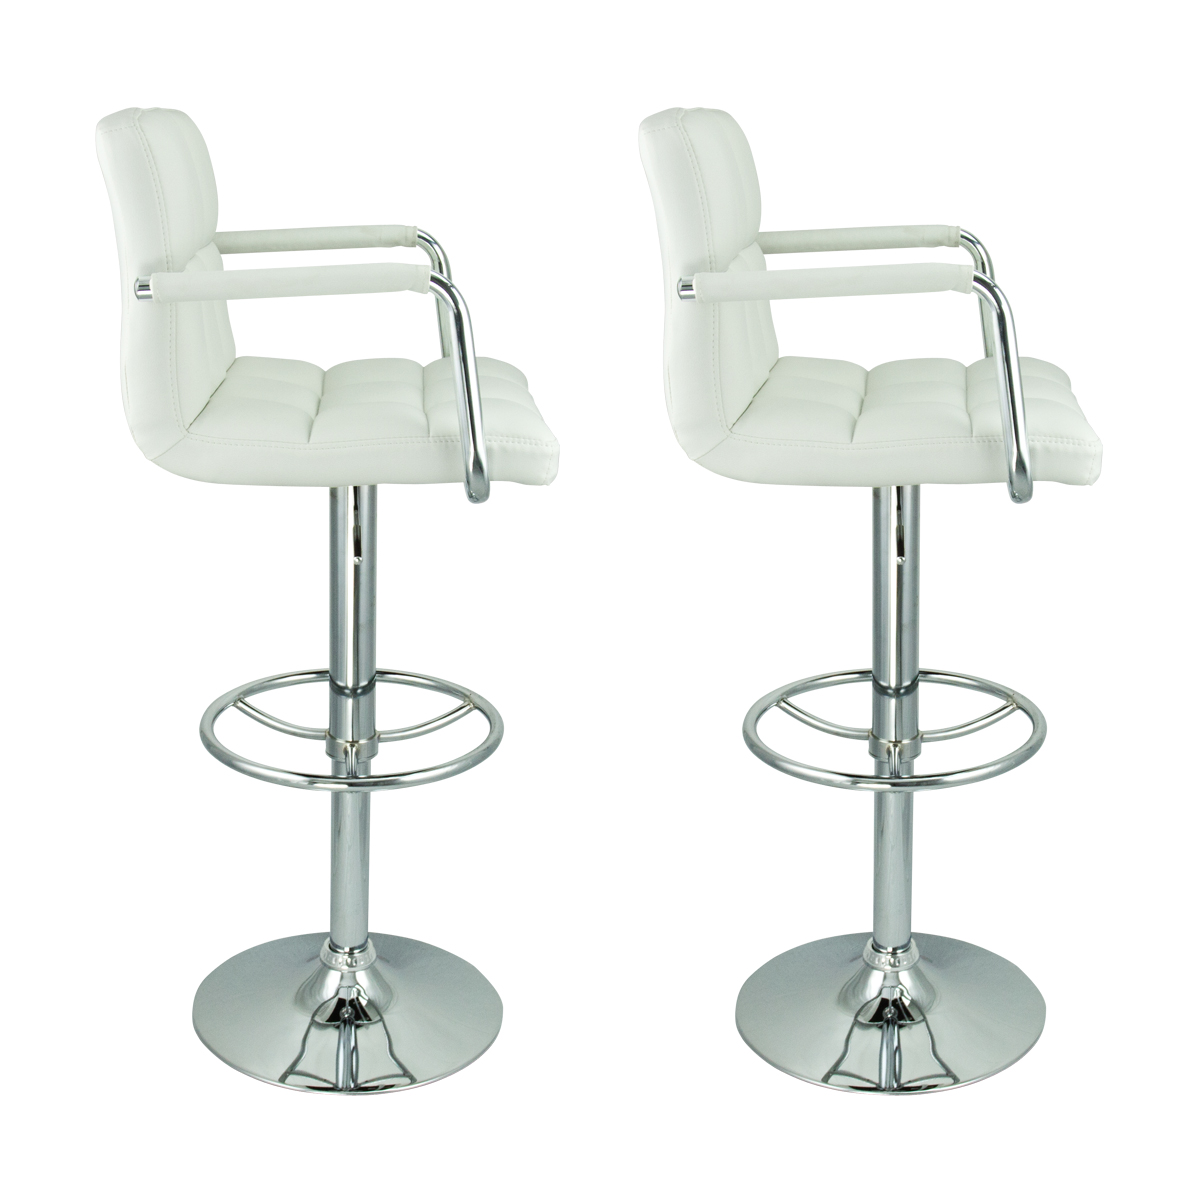 Modern White Bar Stools 2 Swivel White W Arm Pu Leather Modern Adjustable